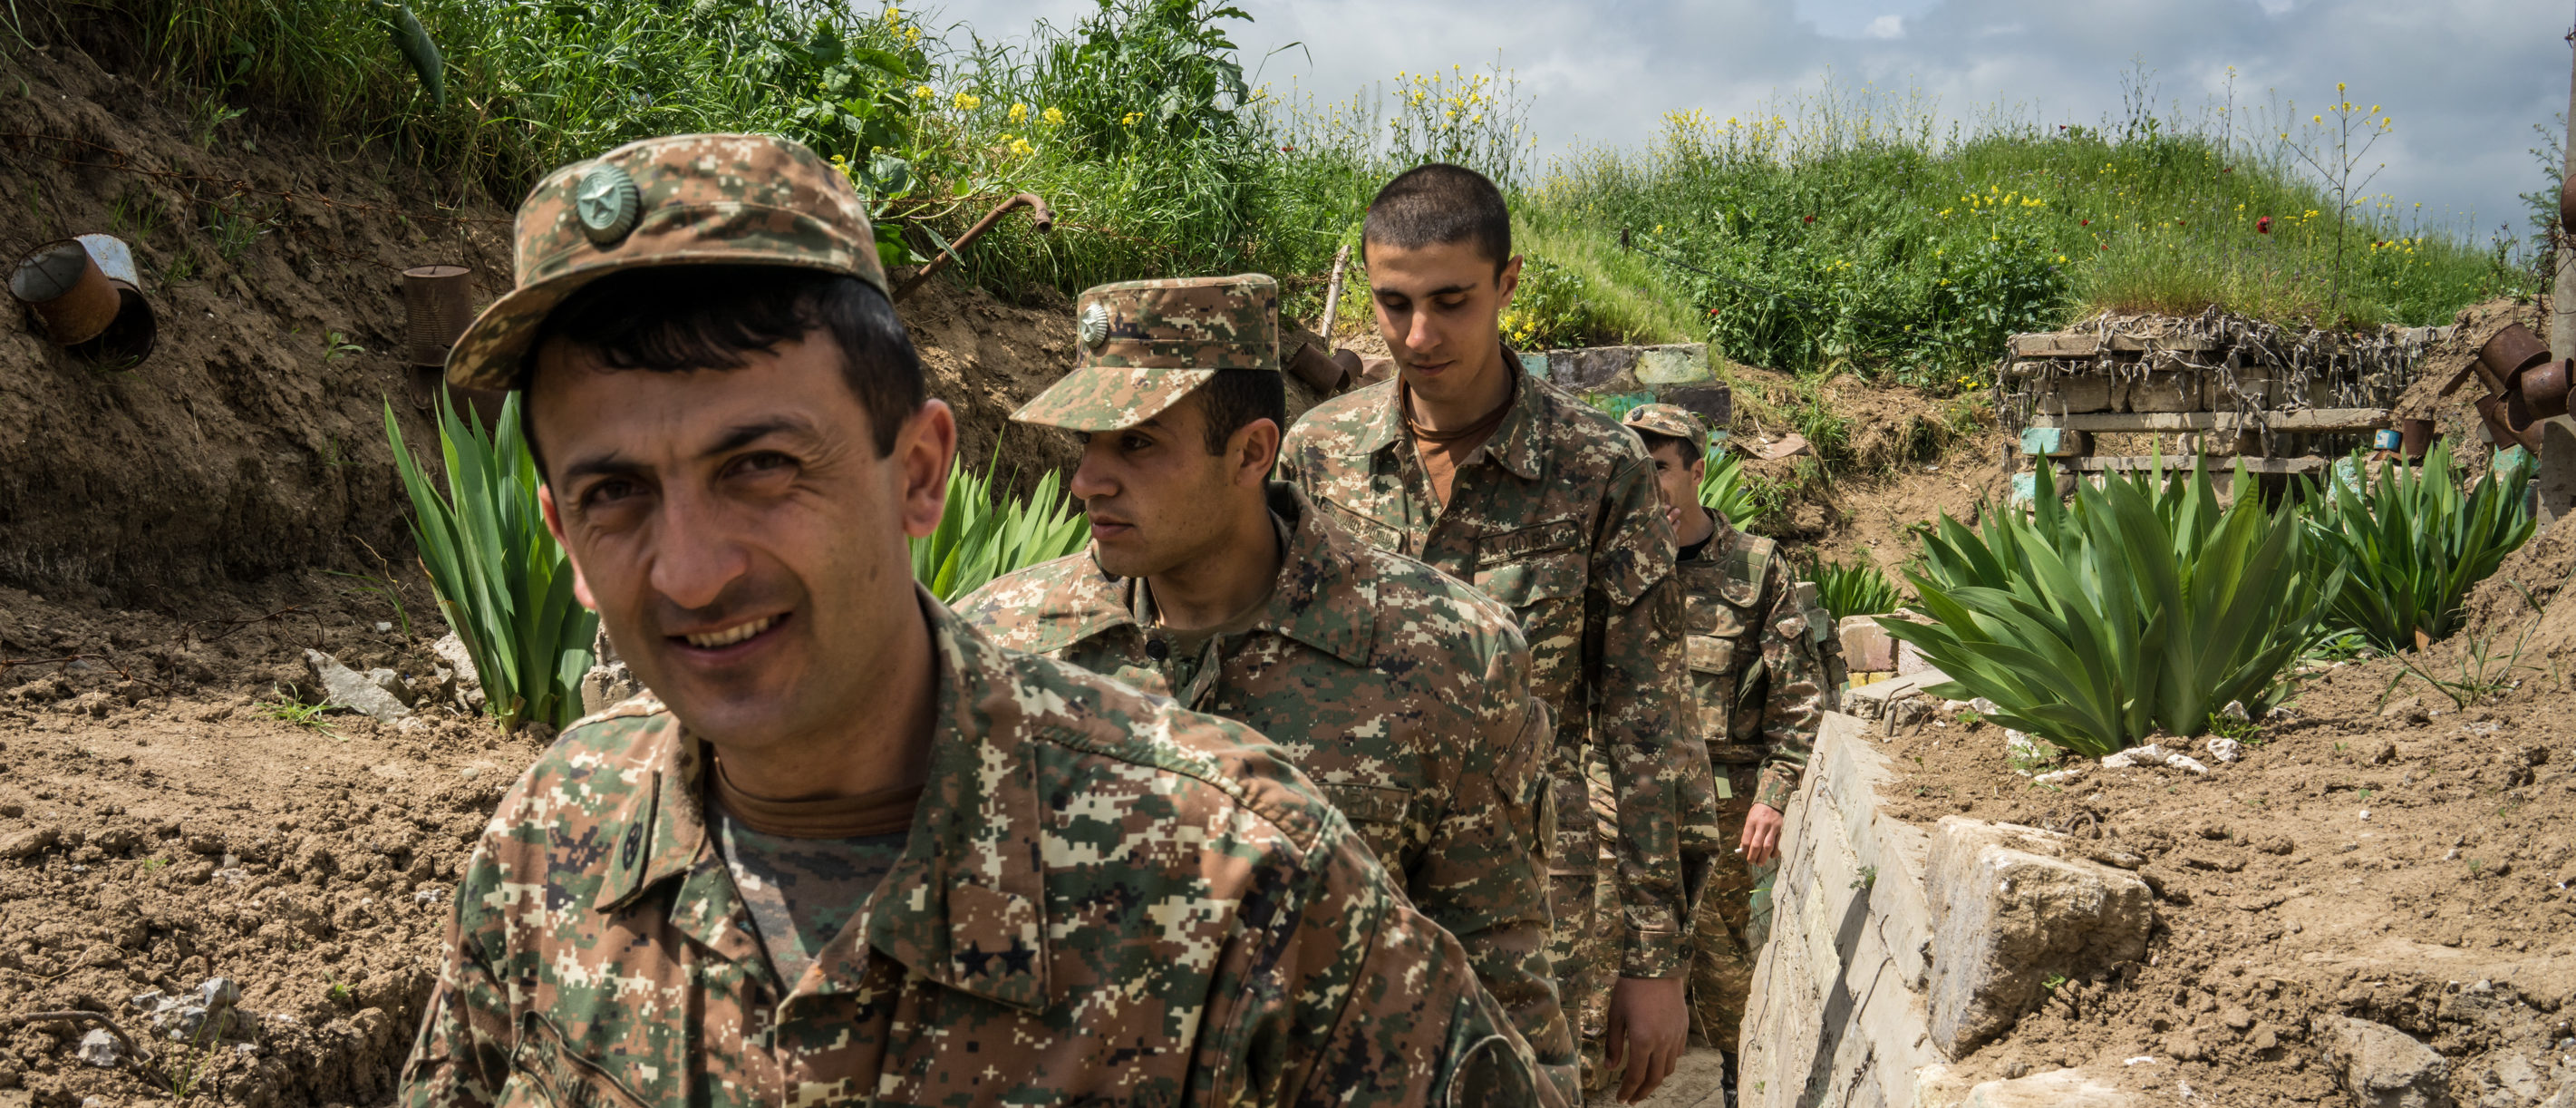 AGDAM, NAGORNO-KARABAKH - APRIL 21: Members of the armed forces of Nagorno-Karabakh at their post along the line of contact with Azerbaijani forces in the eastern direction on April 21, 2015 near the town of Agdam, Nagorno-Karabakh. Since signing a ceasefire in a war with Azerbaijan in 1994, Nagorno-Karabakh, officially part of Azerbaijan, has functioned as a self-declared independent republic and de facto part of Armenia, with hostilities along the line of contact between Nagorno-Karabakh and Azerbaijan occasionally flaring up and causing casualties. (Photo by Brendan Hoffman/Getty Images)